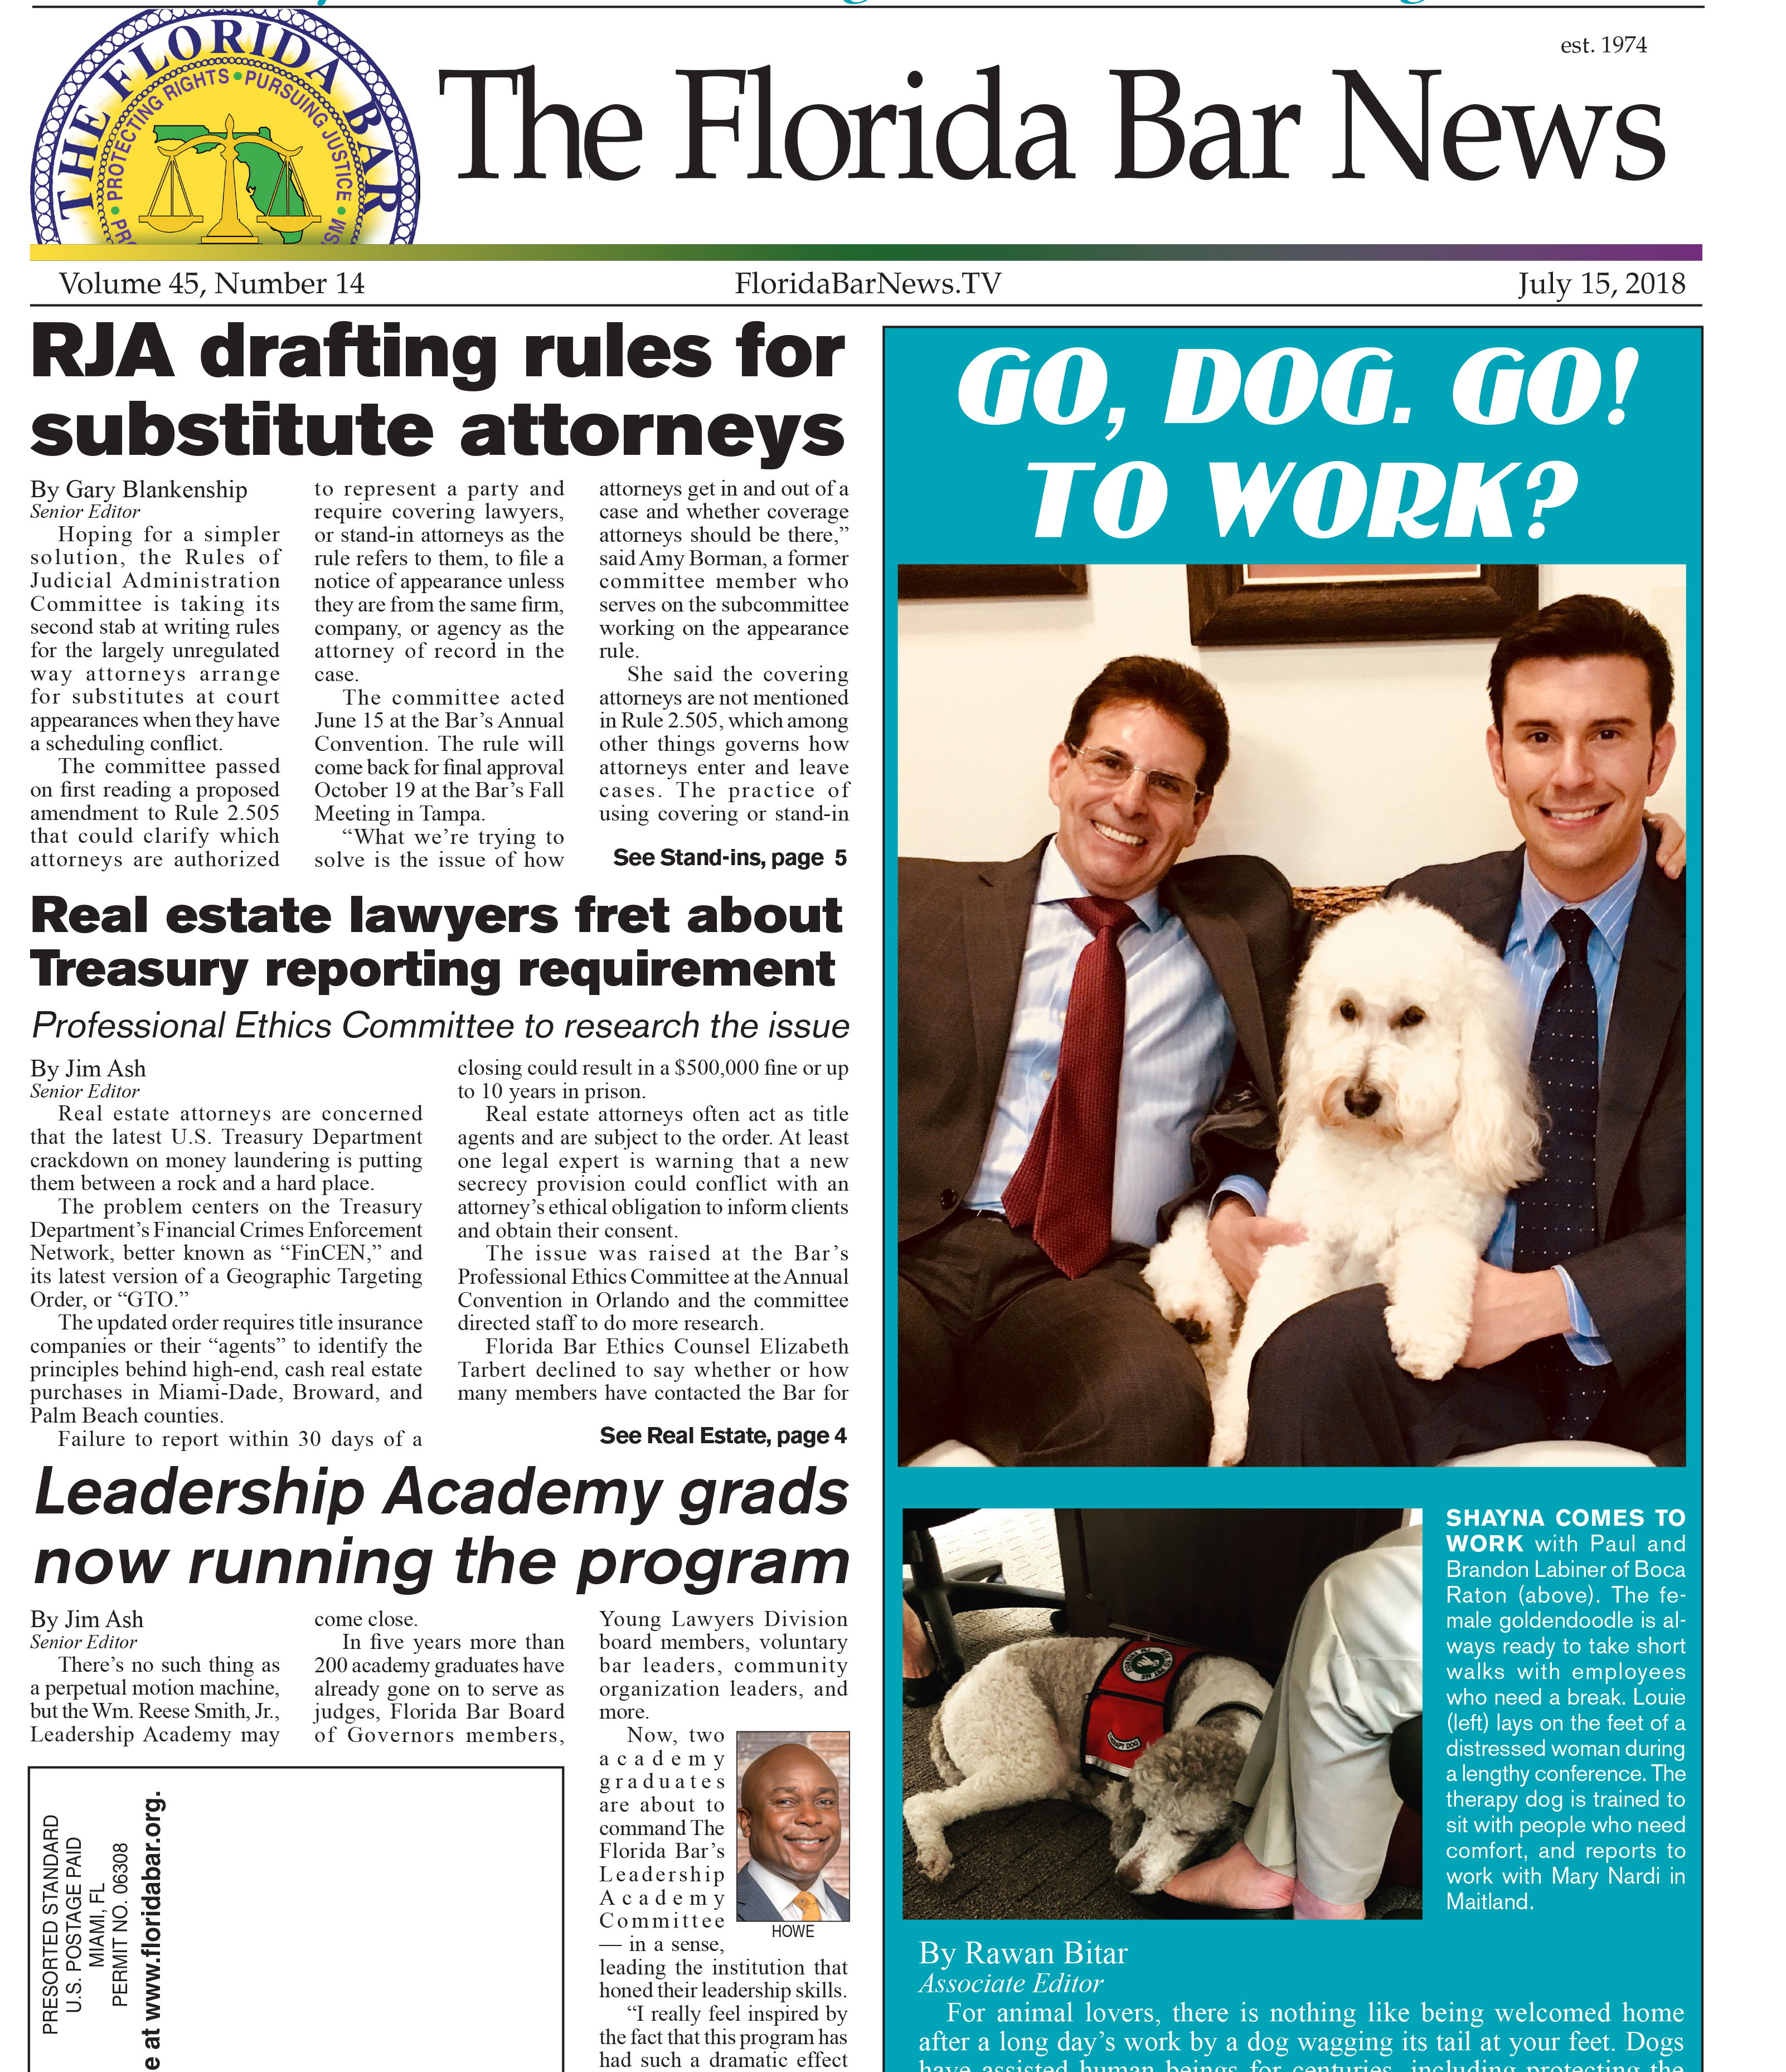 The July 15 Bar News: Rules for stand-in attorneys, Leadership Academy grads lead the program and dogs go to work.